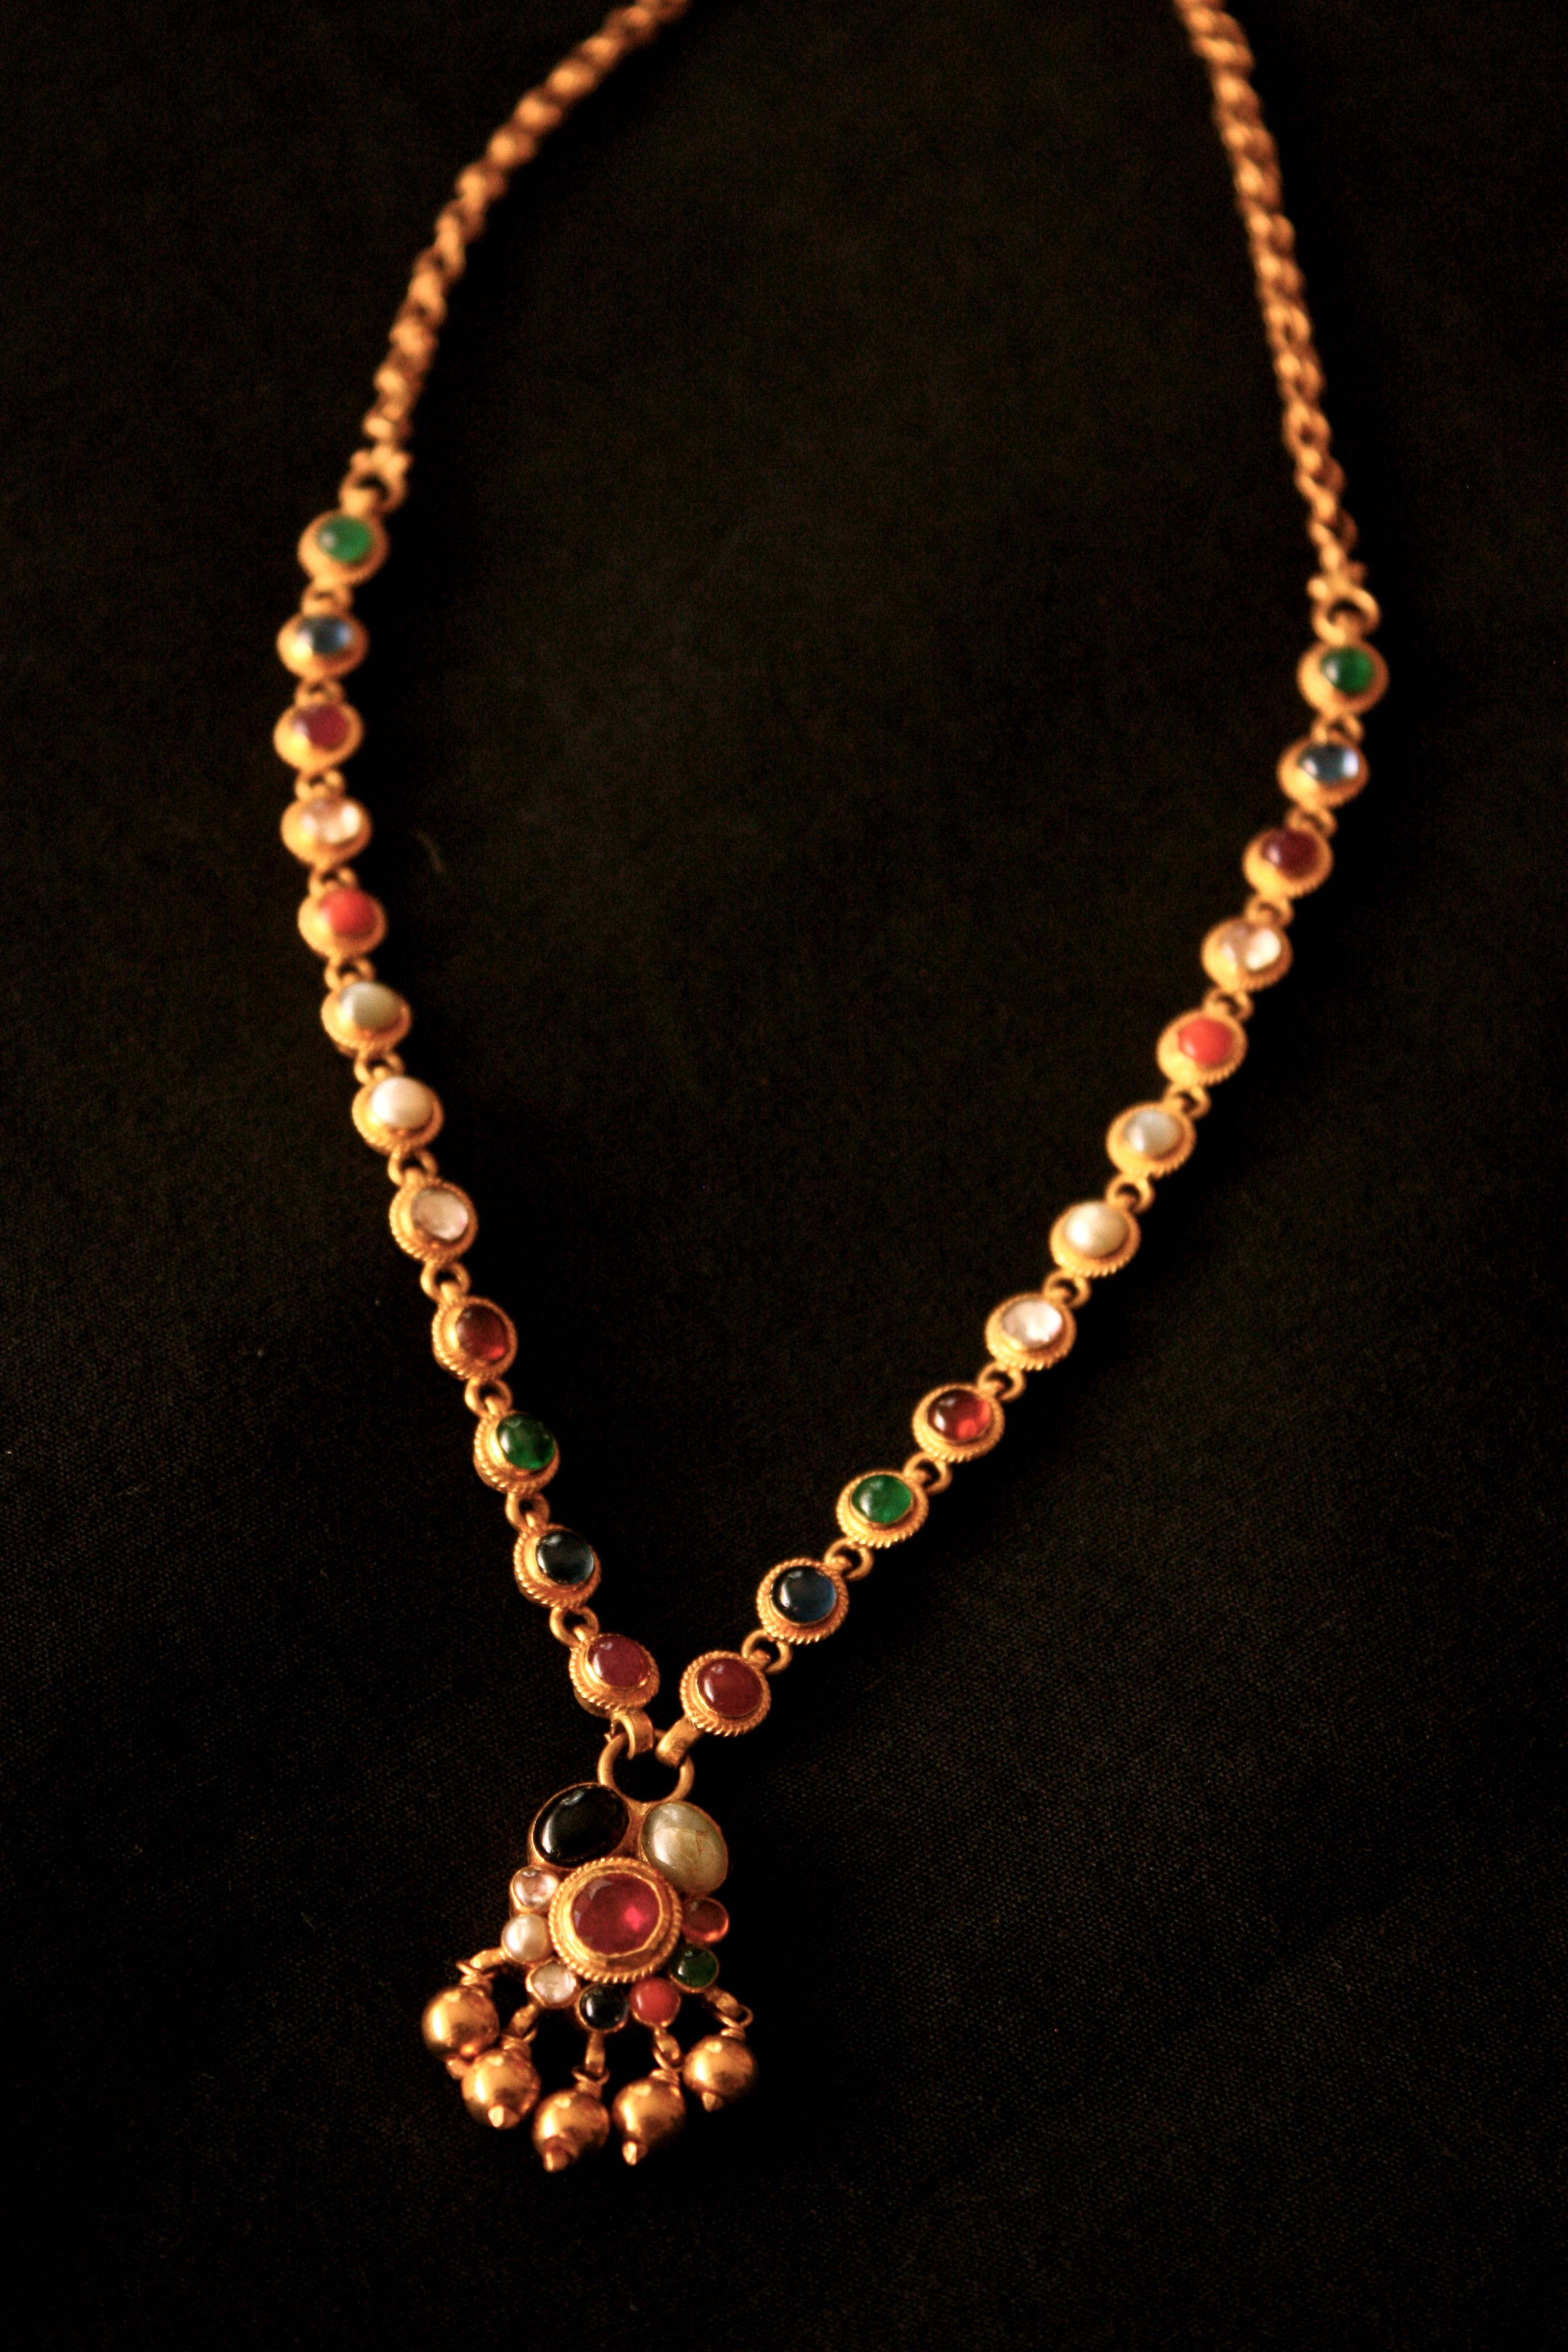 Pai jewellers gold necklace designs latest indian jewellery designs - Design Alert A Simple Navaratna Necklace South India Jewels